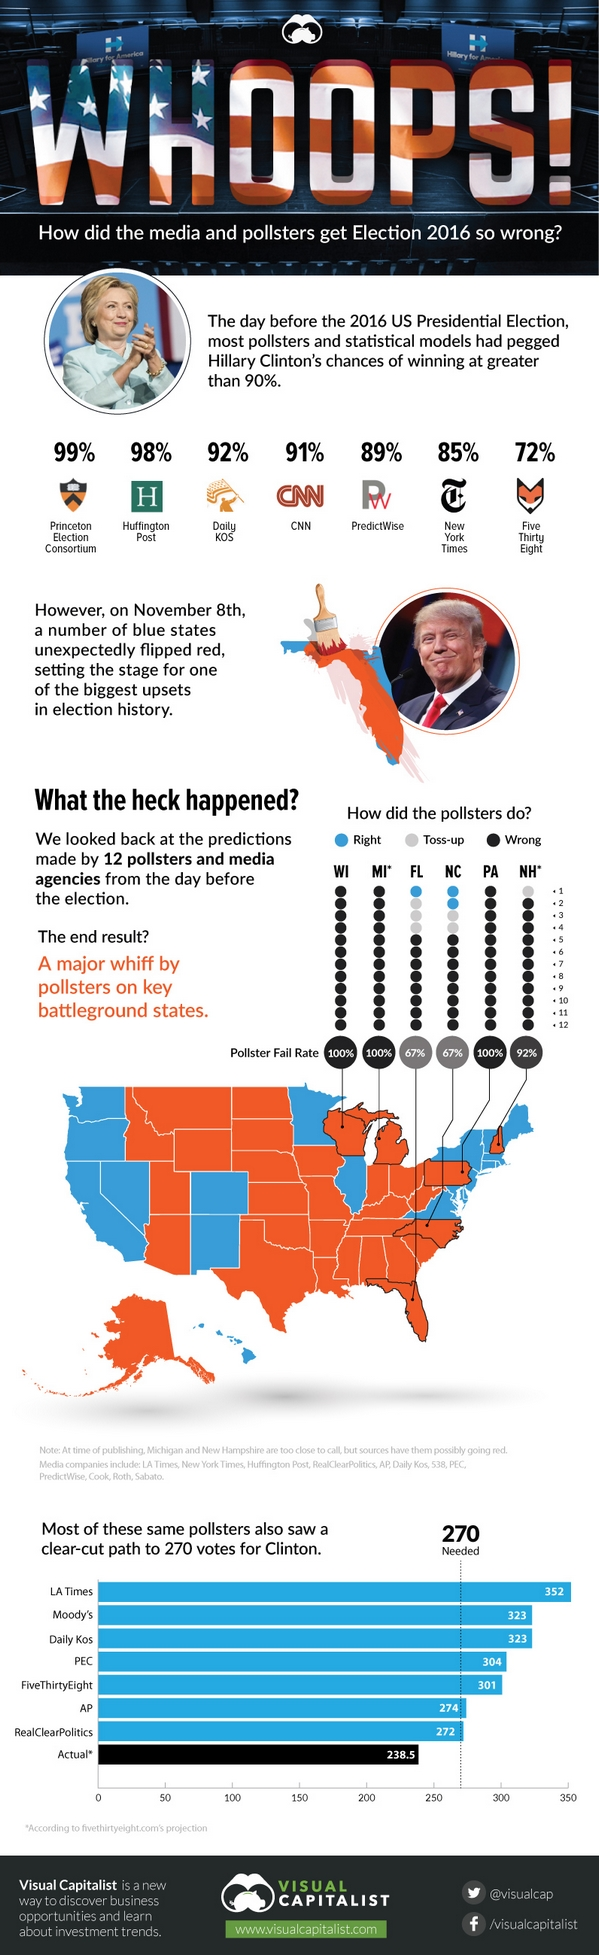 How Did the Media and Pollsters Get the Election So Wrong?